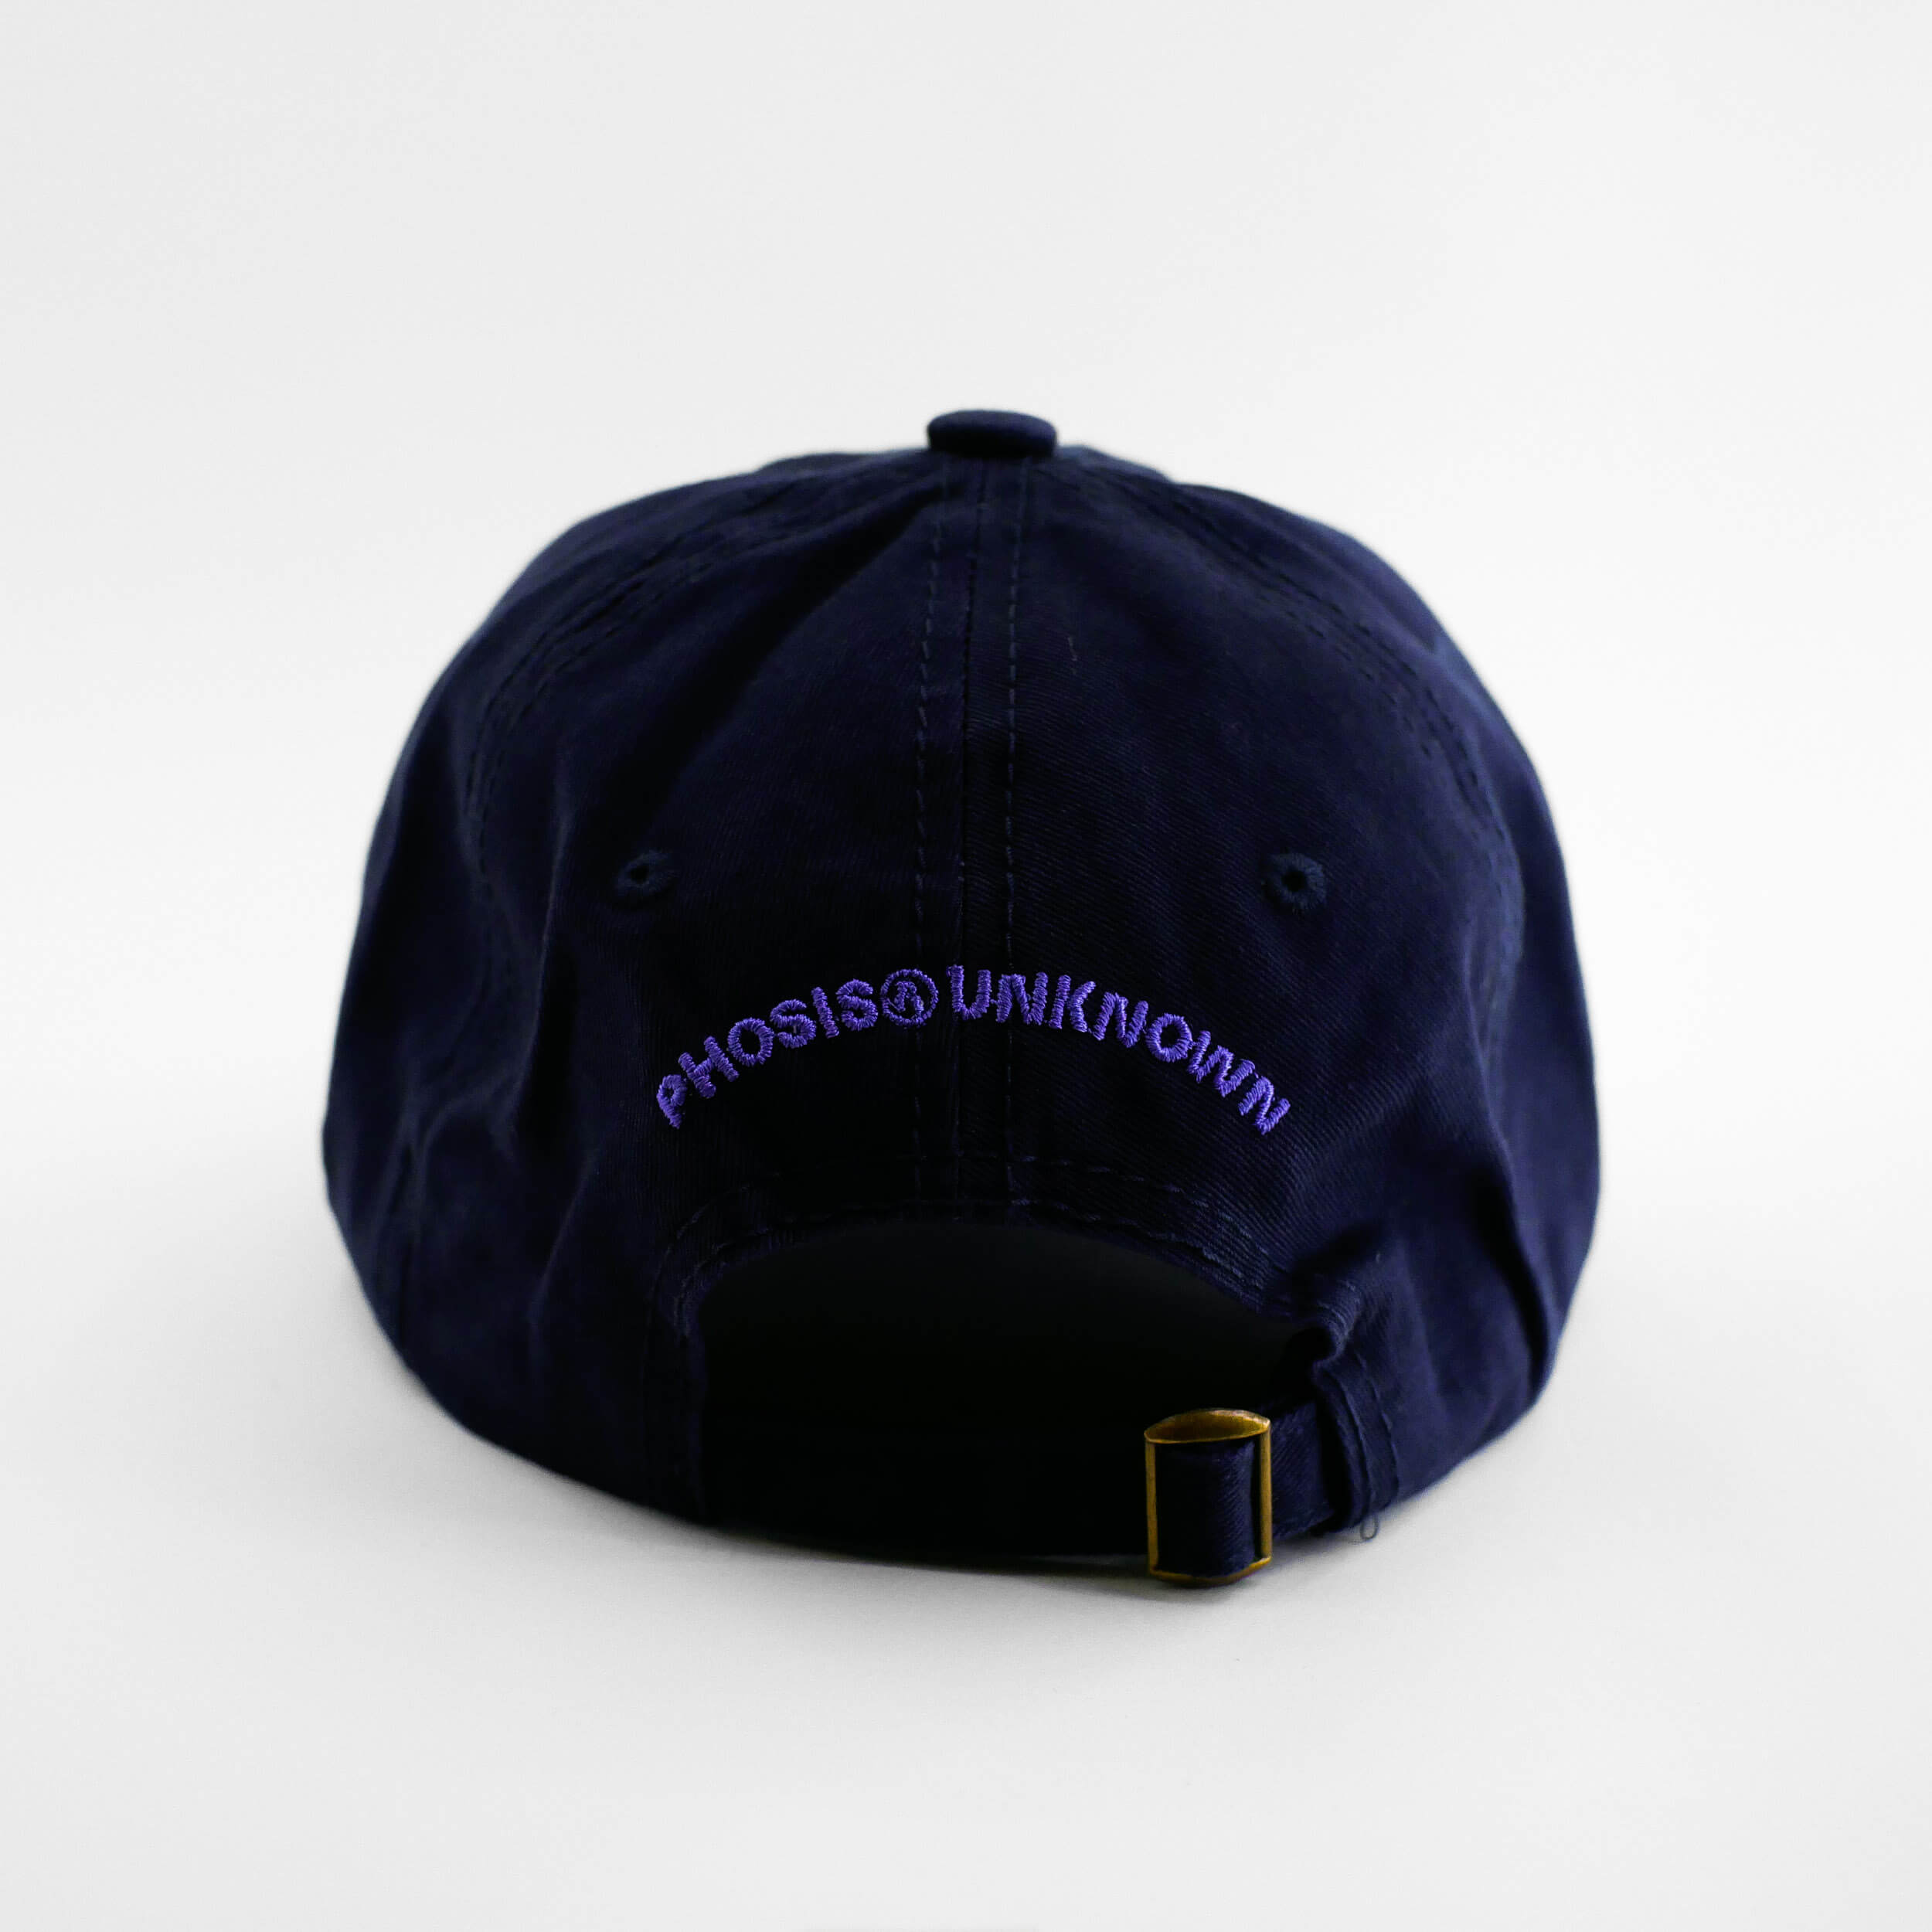 Back view of the embroidered 'FLAMBE' navy blue hat from PHOSIS Clothing